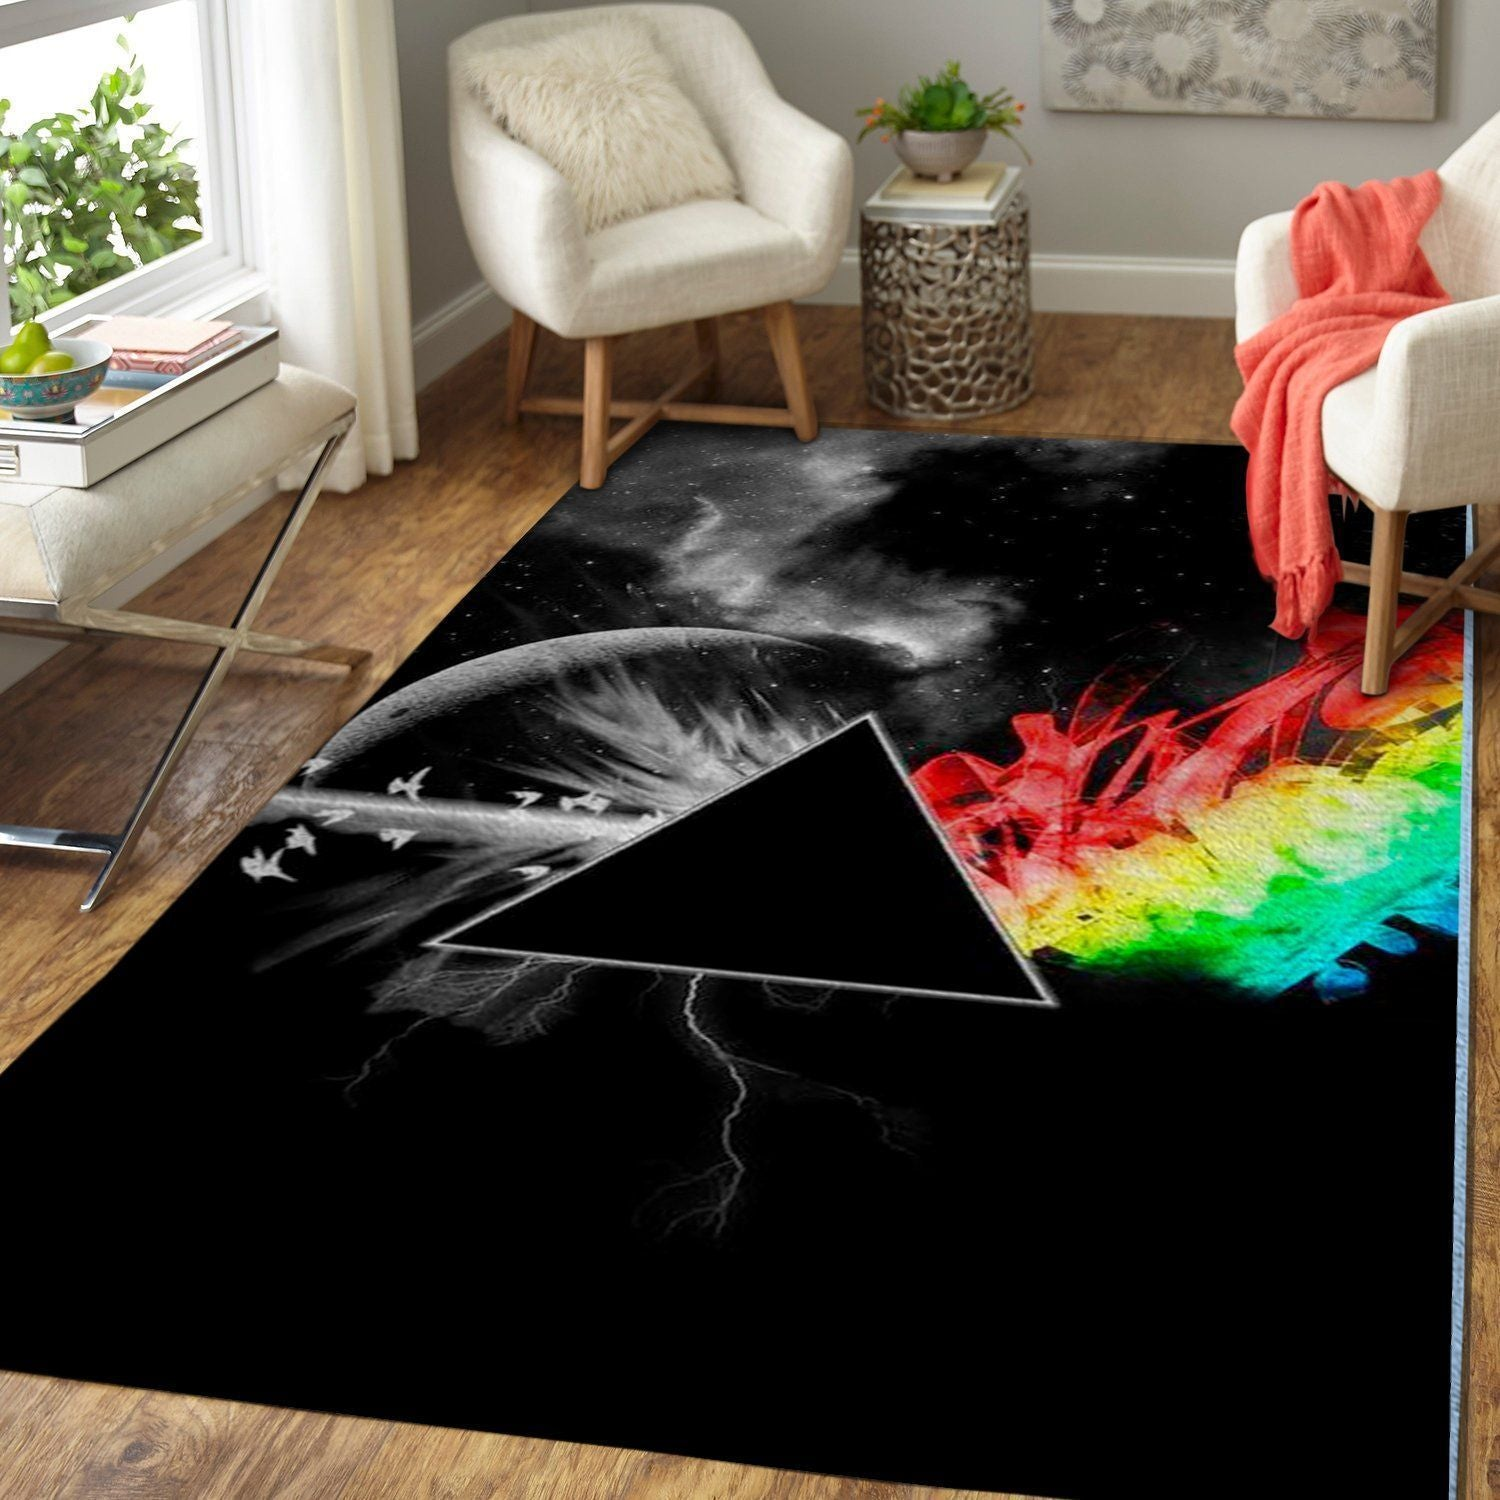 Pink Floyd Area Rug - The Dark Side of the Moon / Music OFD 1910125